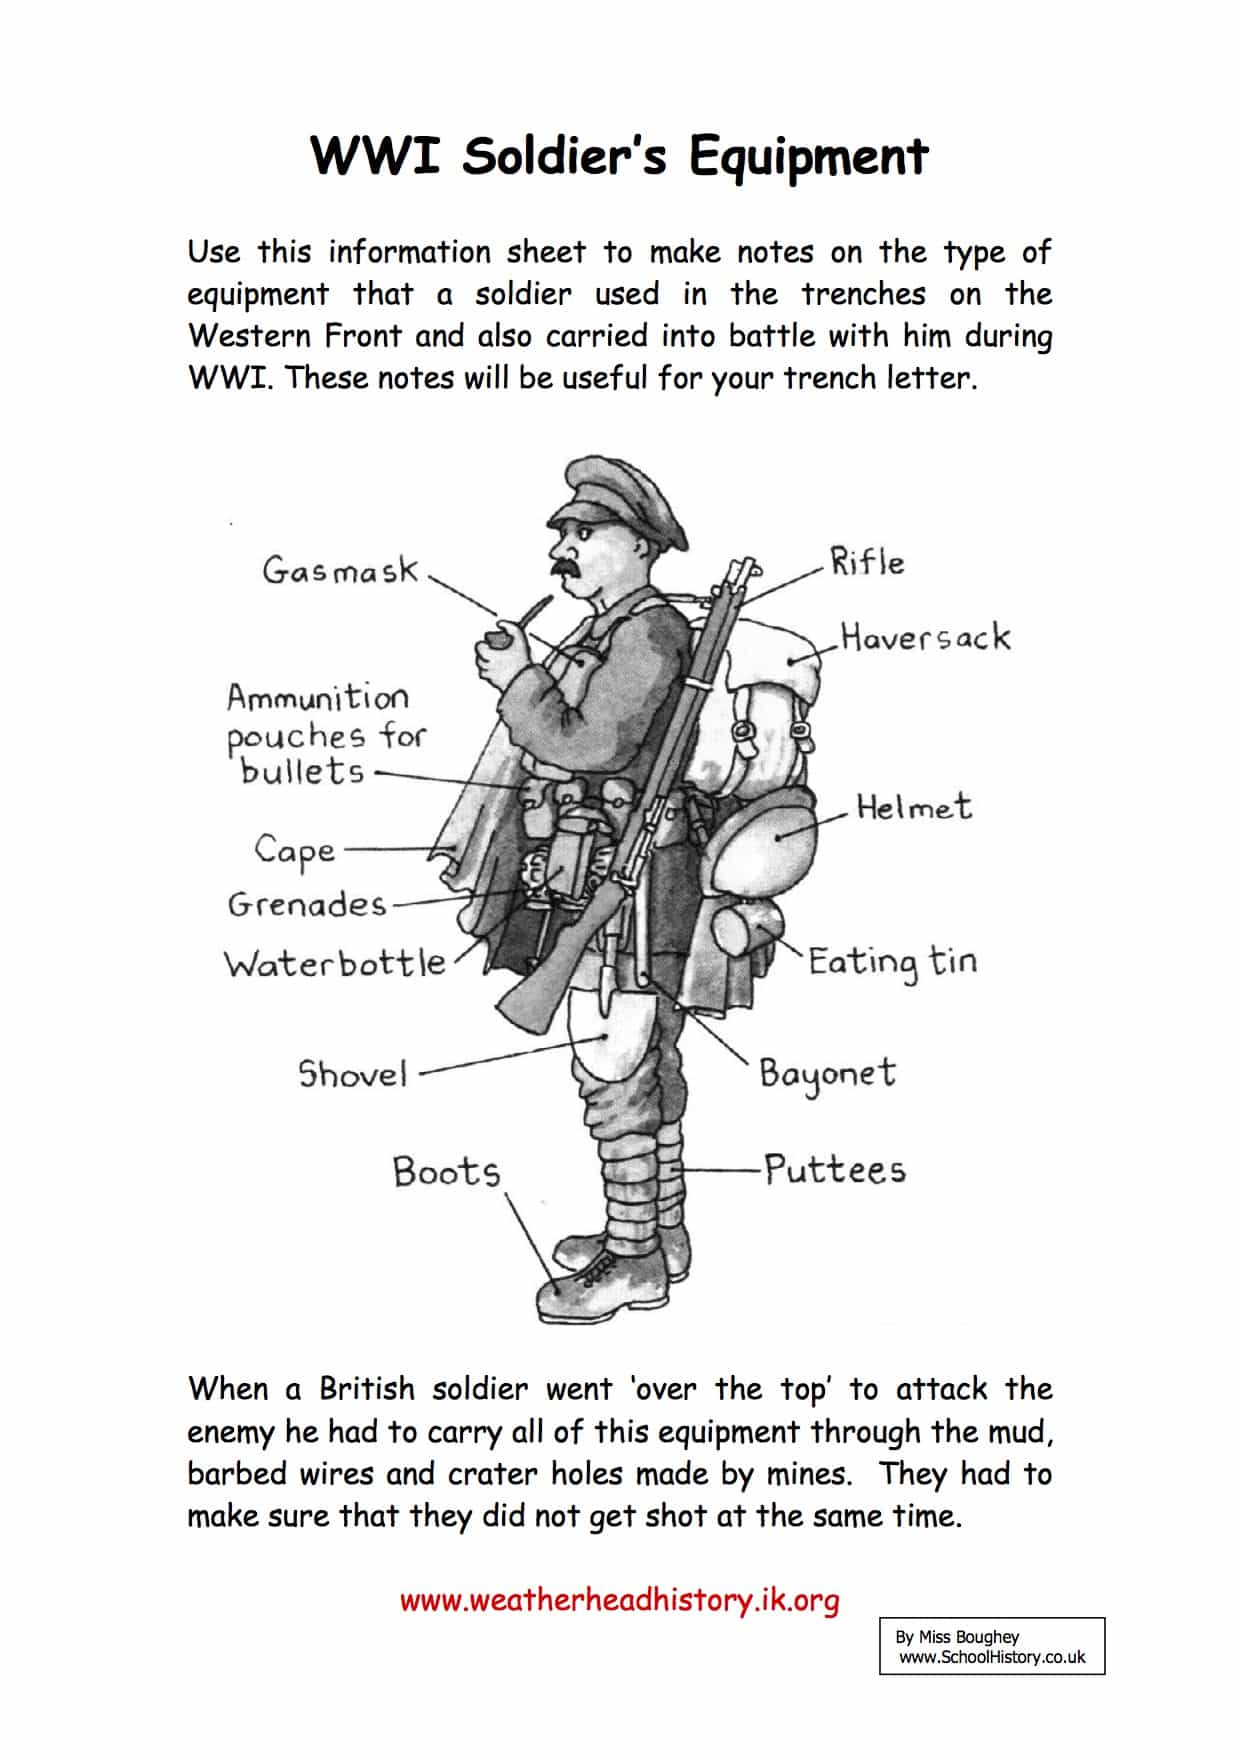 A WW1 Soldier's Equipment Facts & Information Worksheet